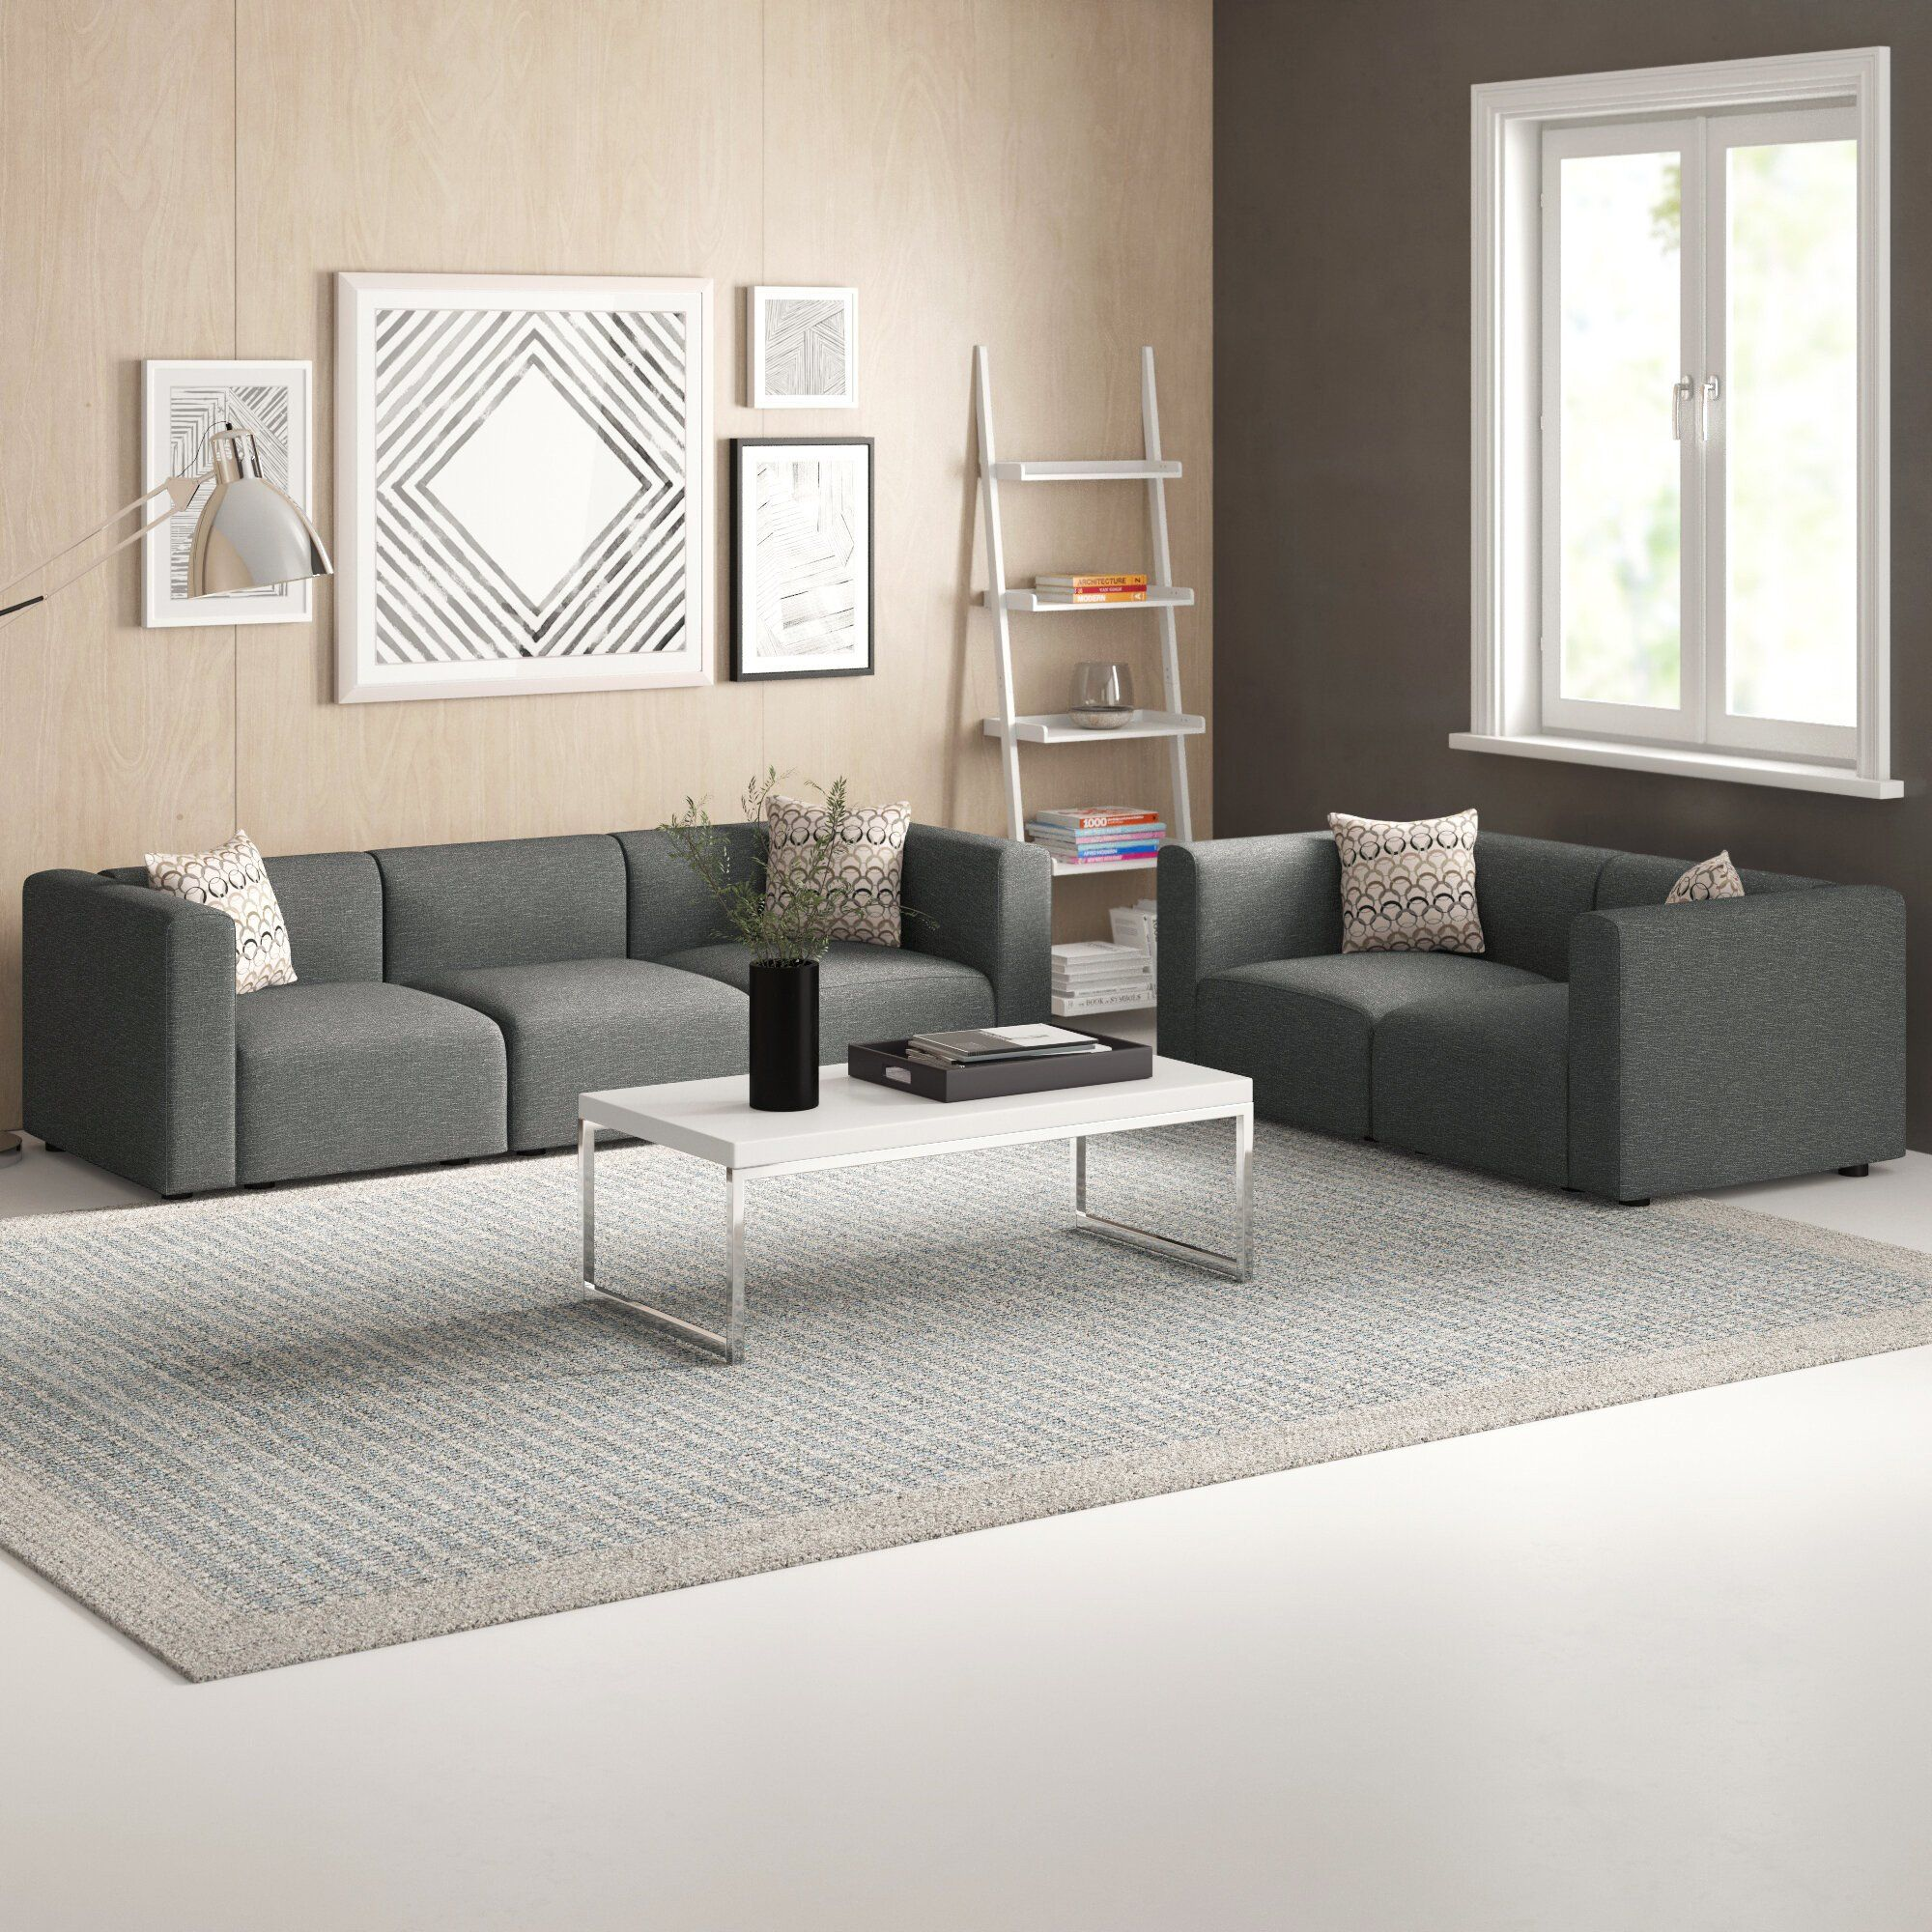 Pin on Furniture Arrangement for Small Living Room